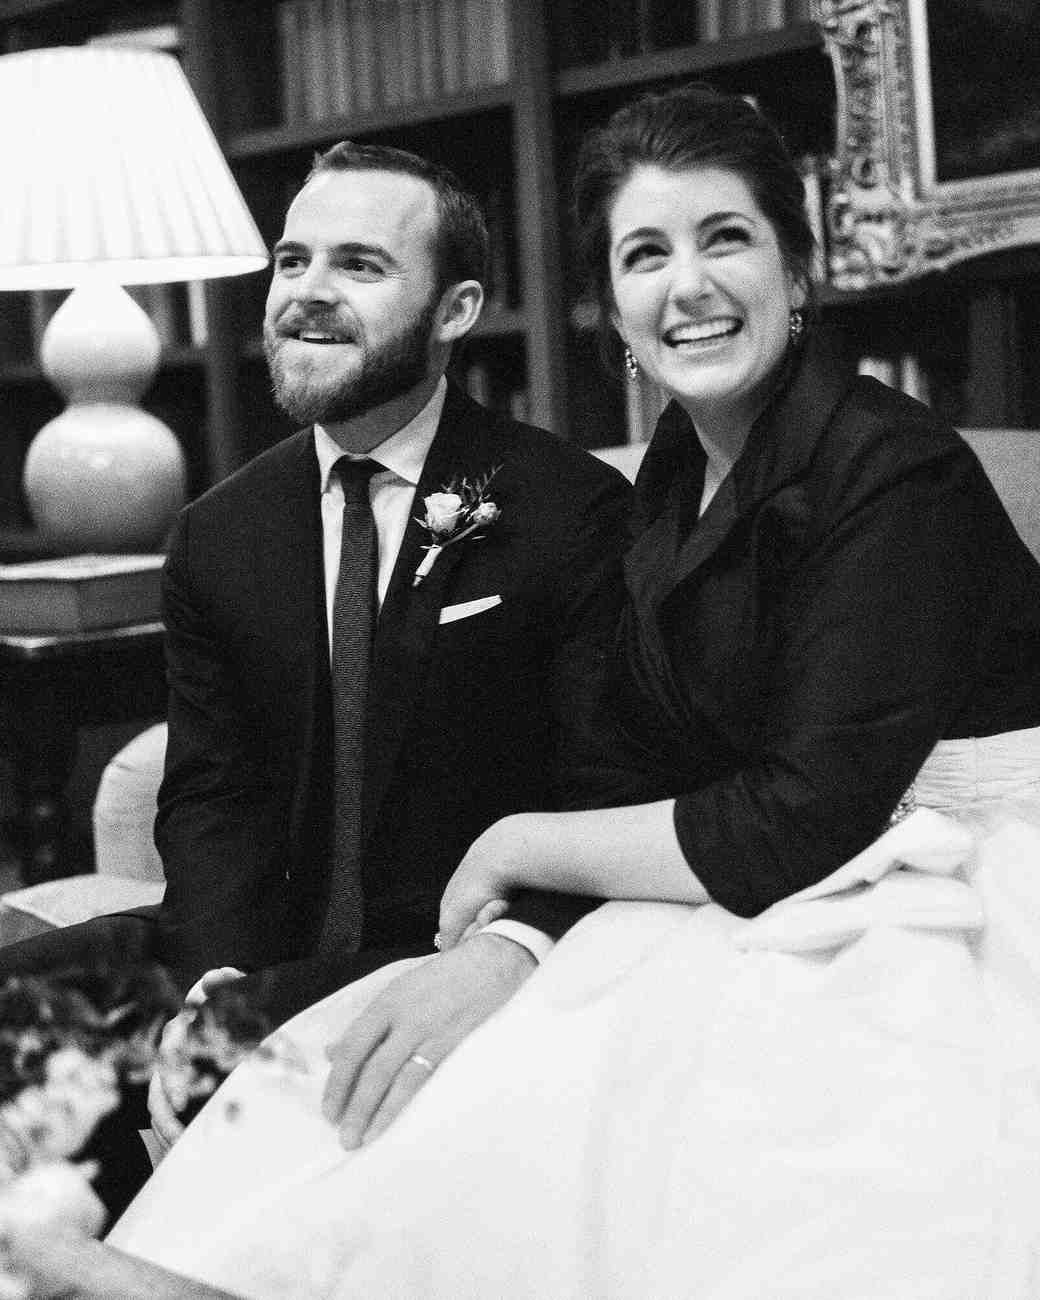 jane-ryan-wedding-couple4-230-s111352-0714.jpg